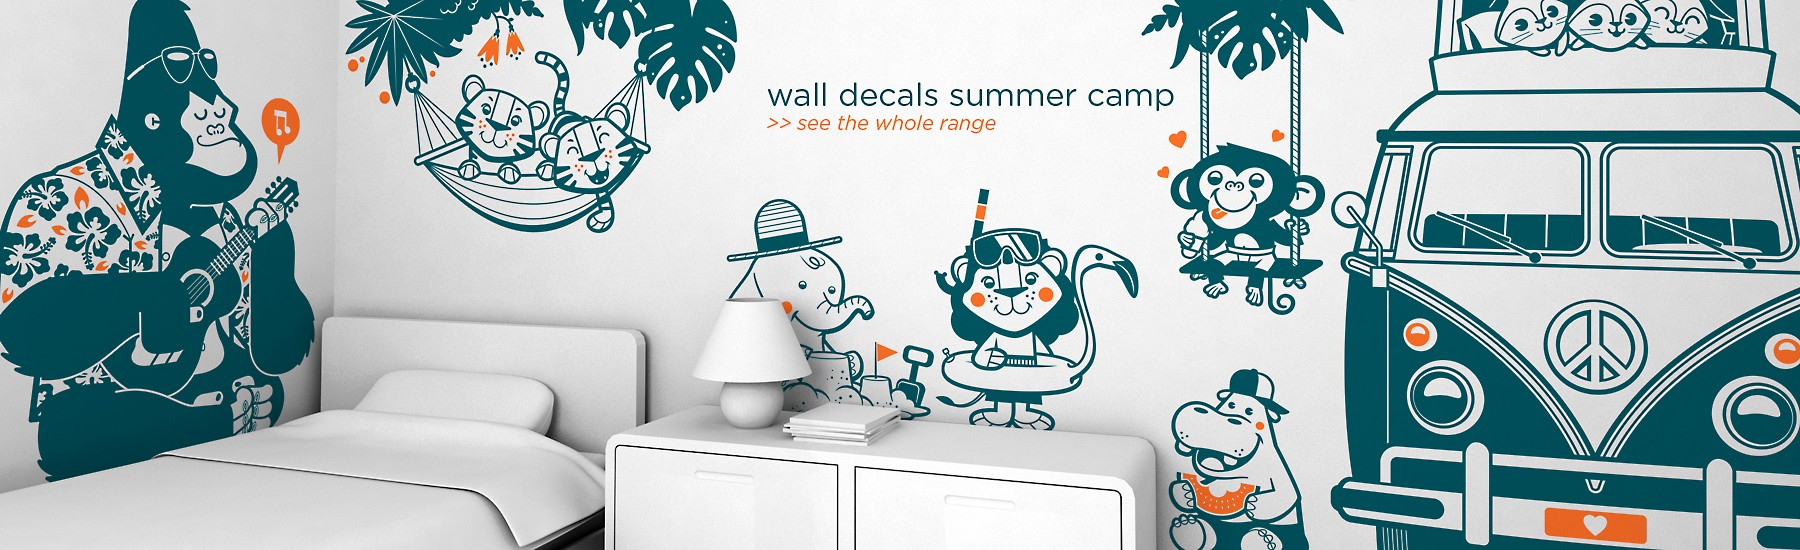 animal wall decals summer camp